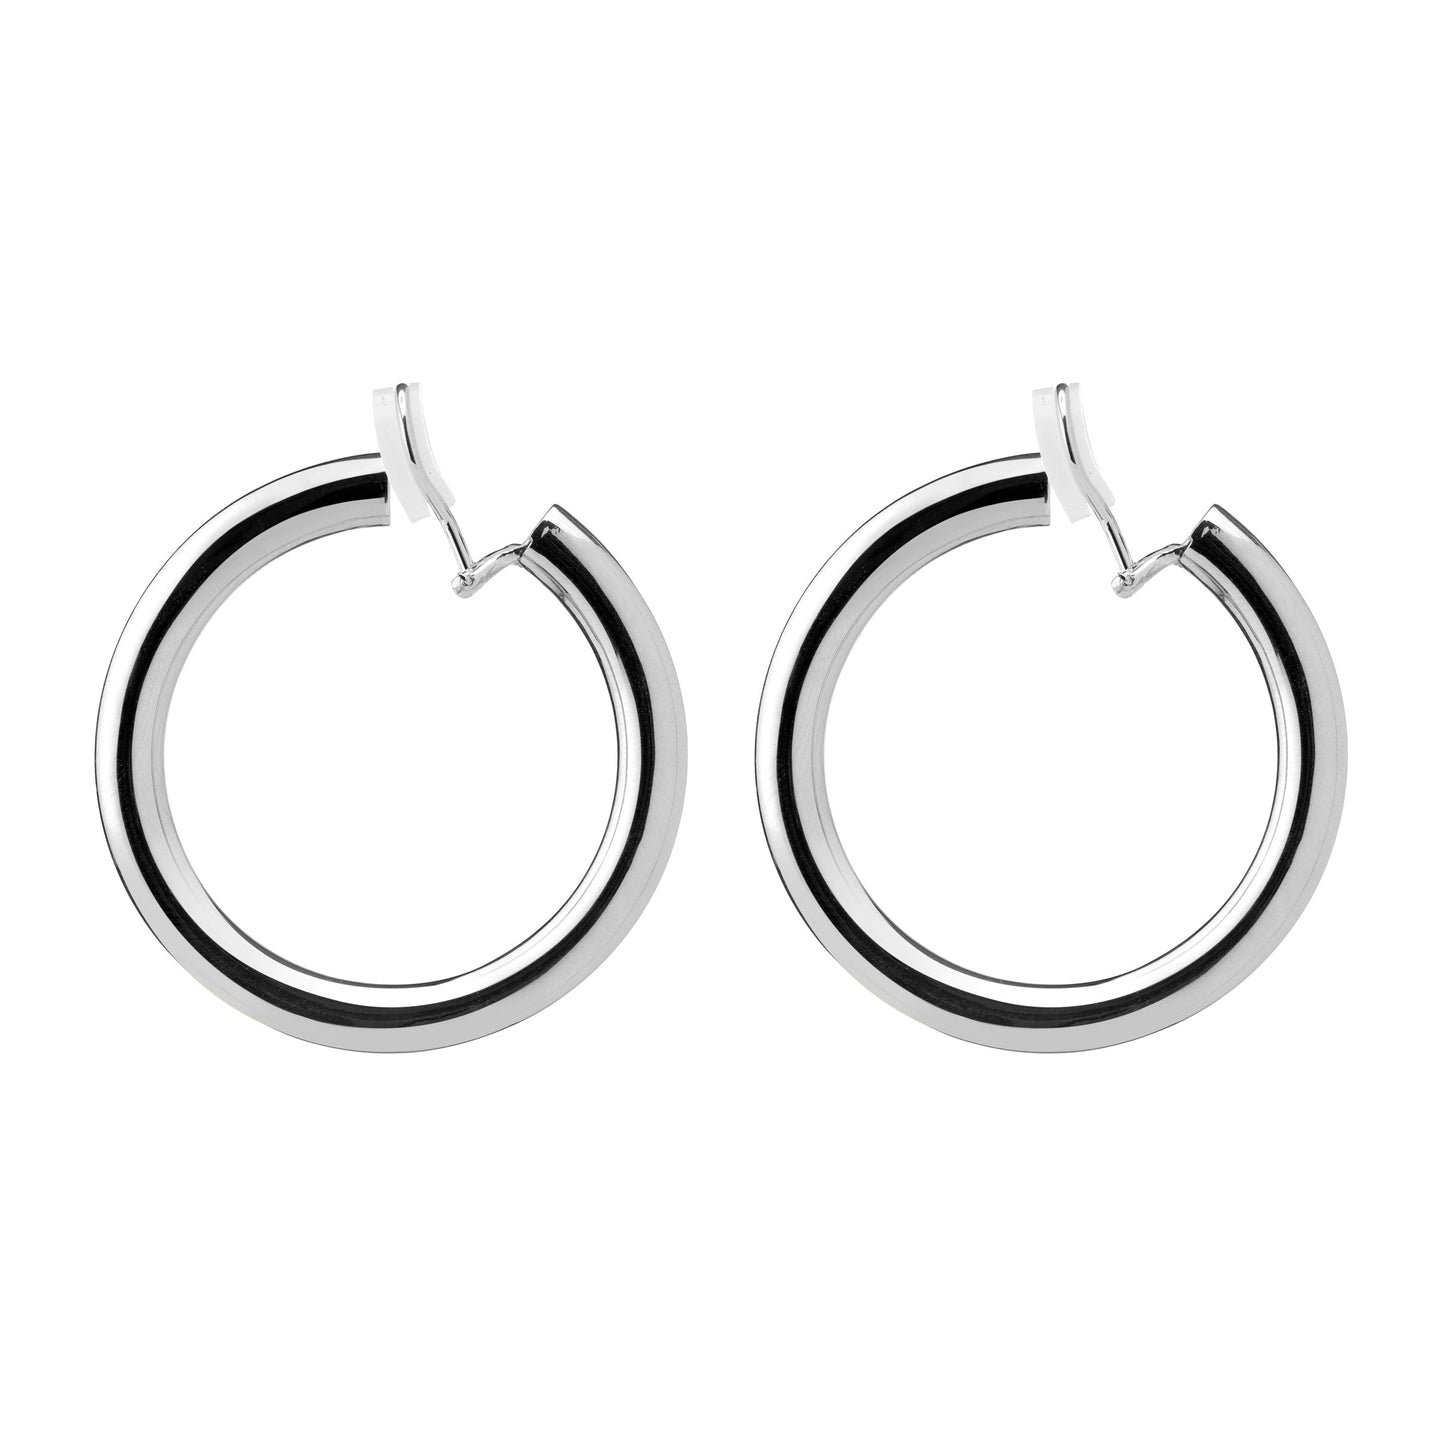 Clip On Baby Samira Hoops